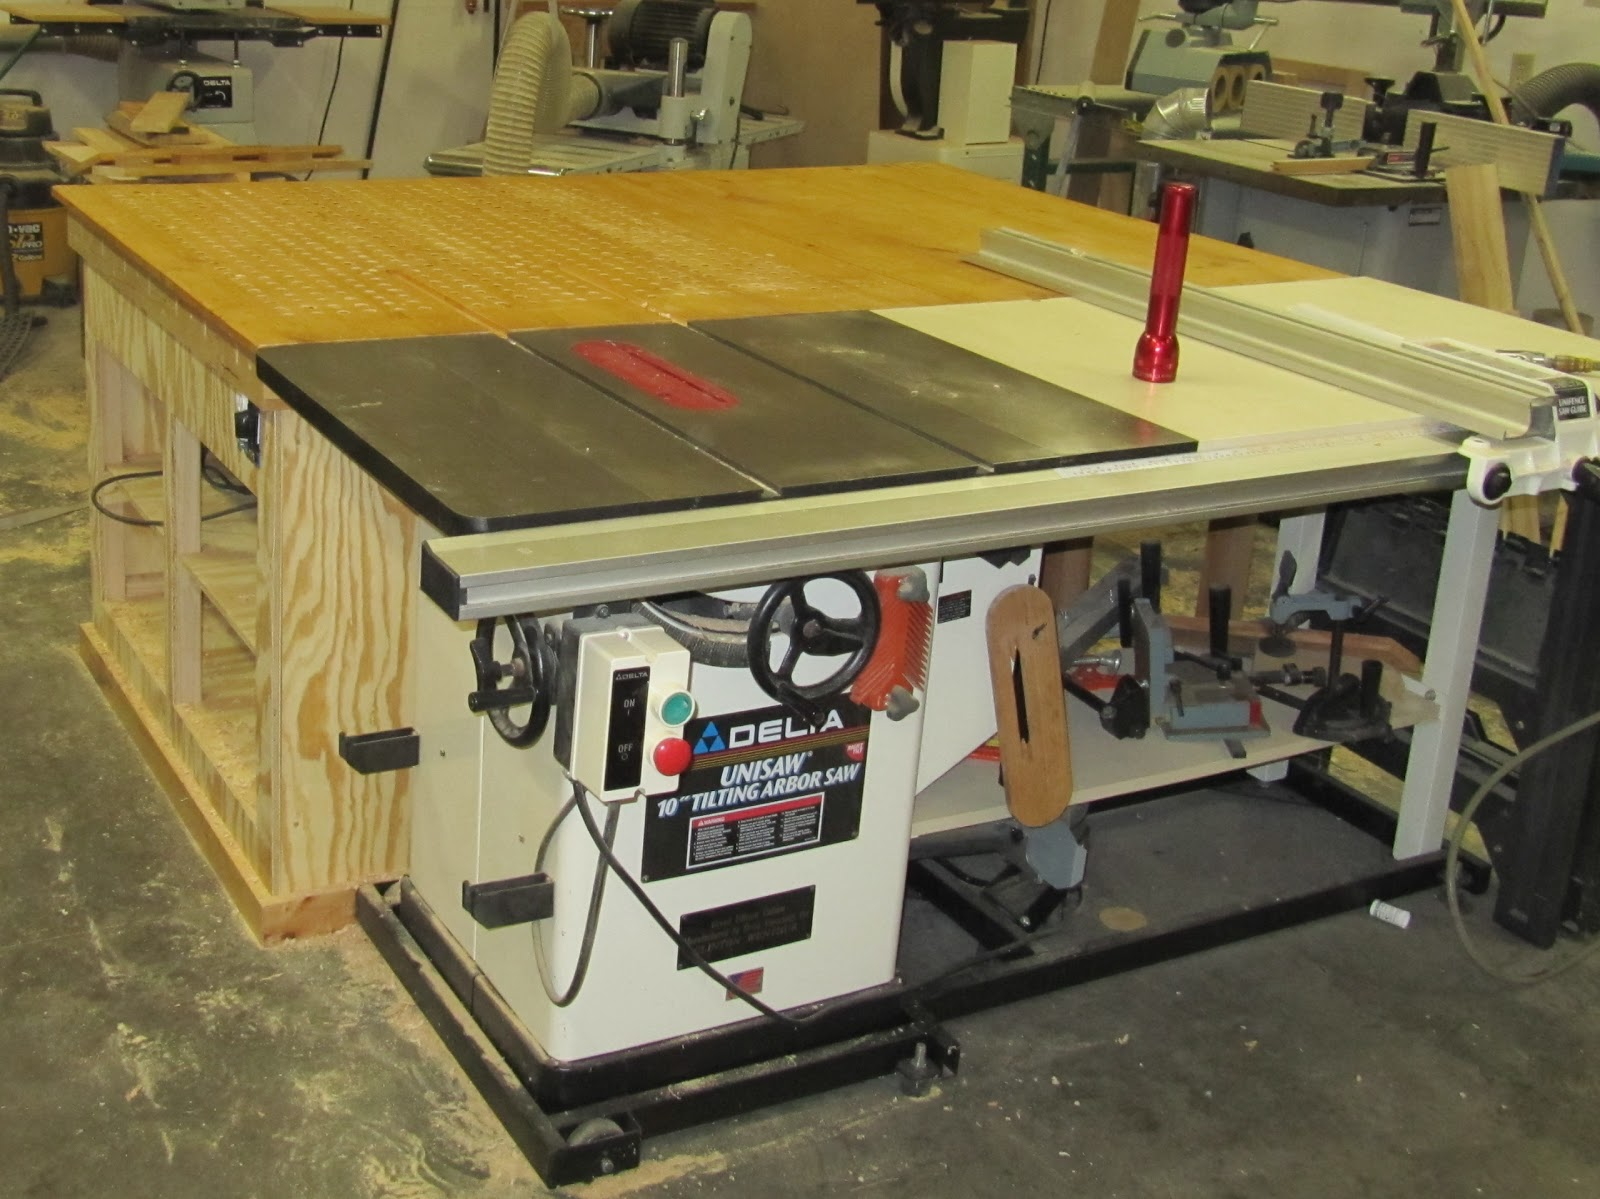 Best Kitchen Gallery: Wenthur's Woodworking Blog Downdraft Table Table Saw Outfeed Table of Base Table Saw Cabinet Plan on rachelxblog.com